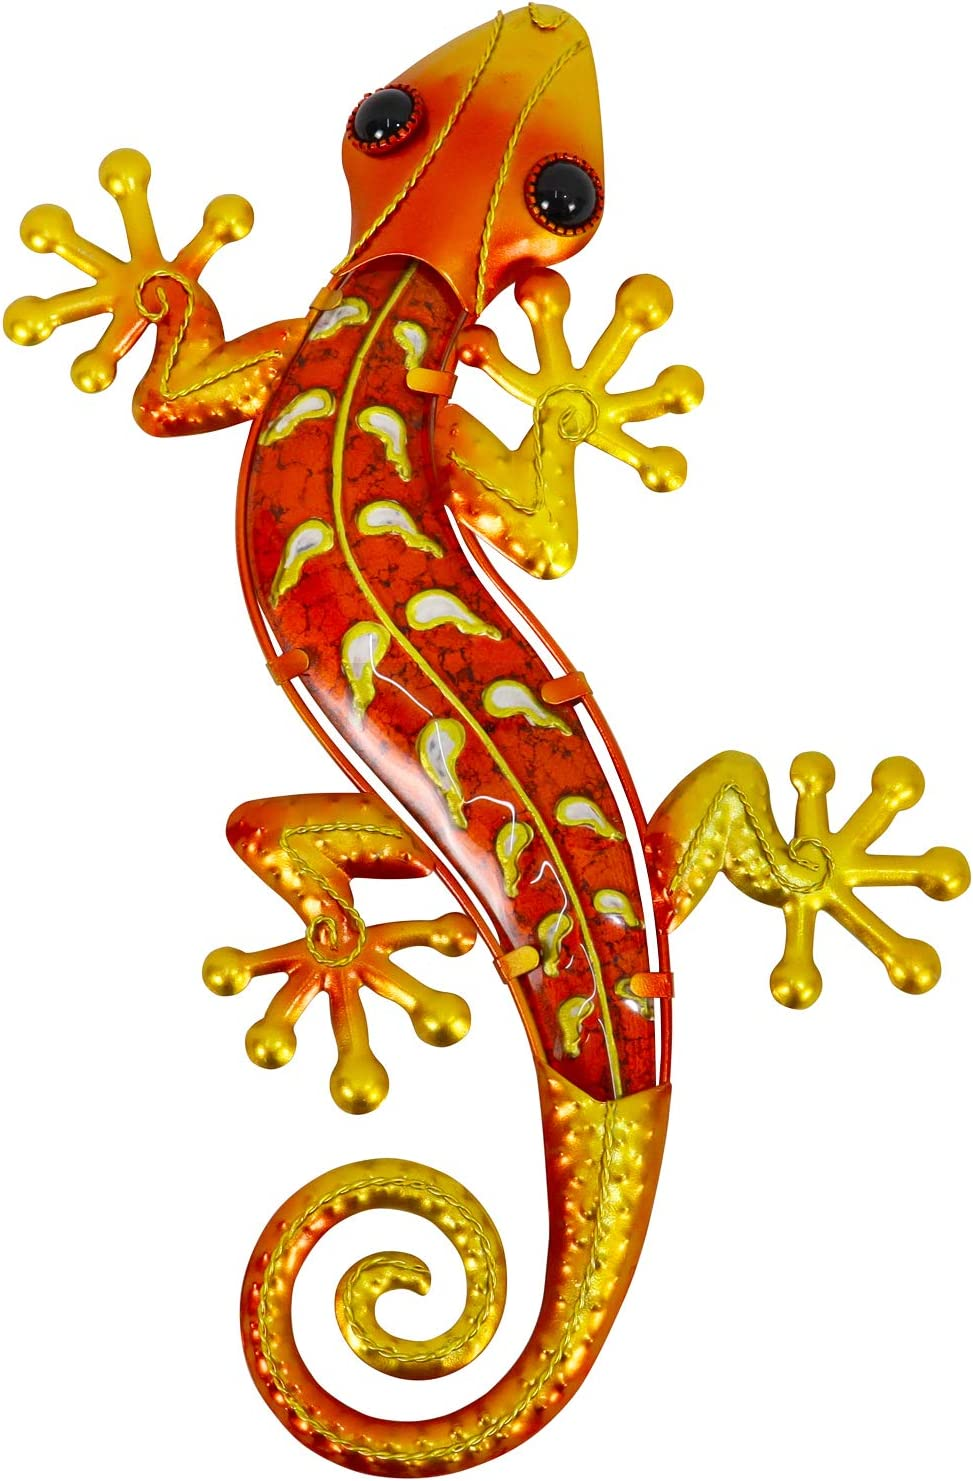 Yellow speckled Gecko Lizard freestanding ornament home display Wall mounted